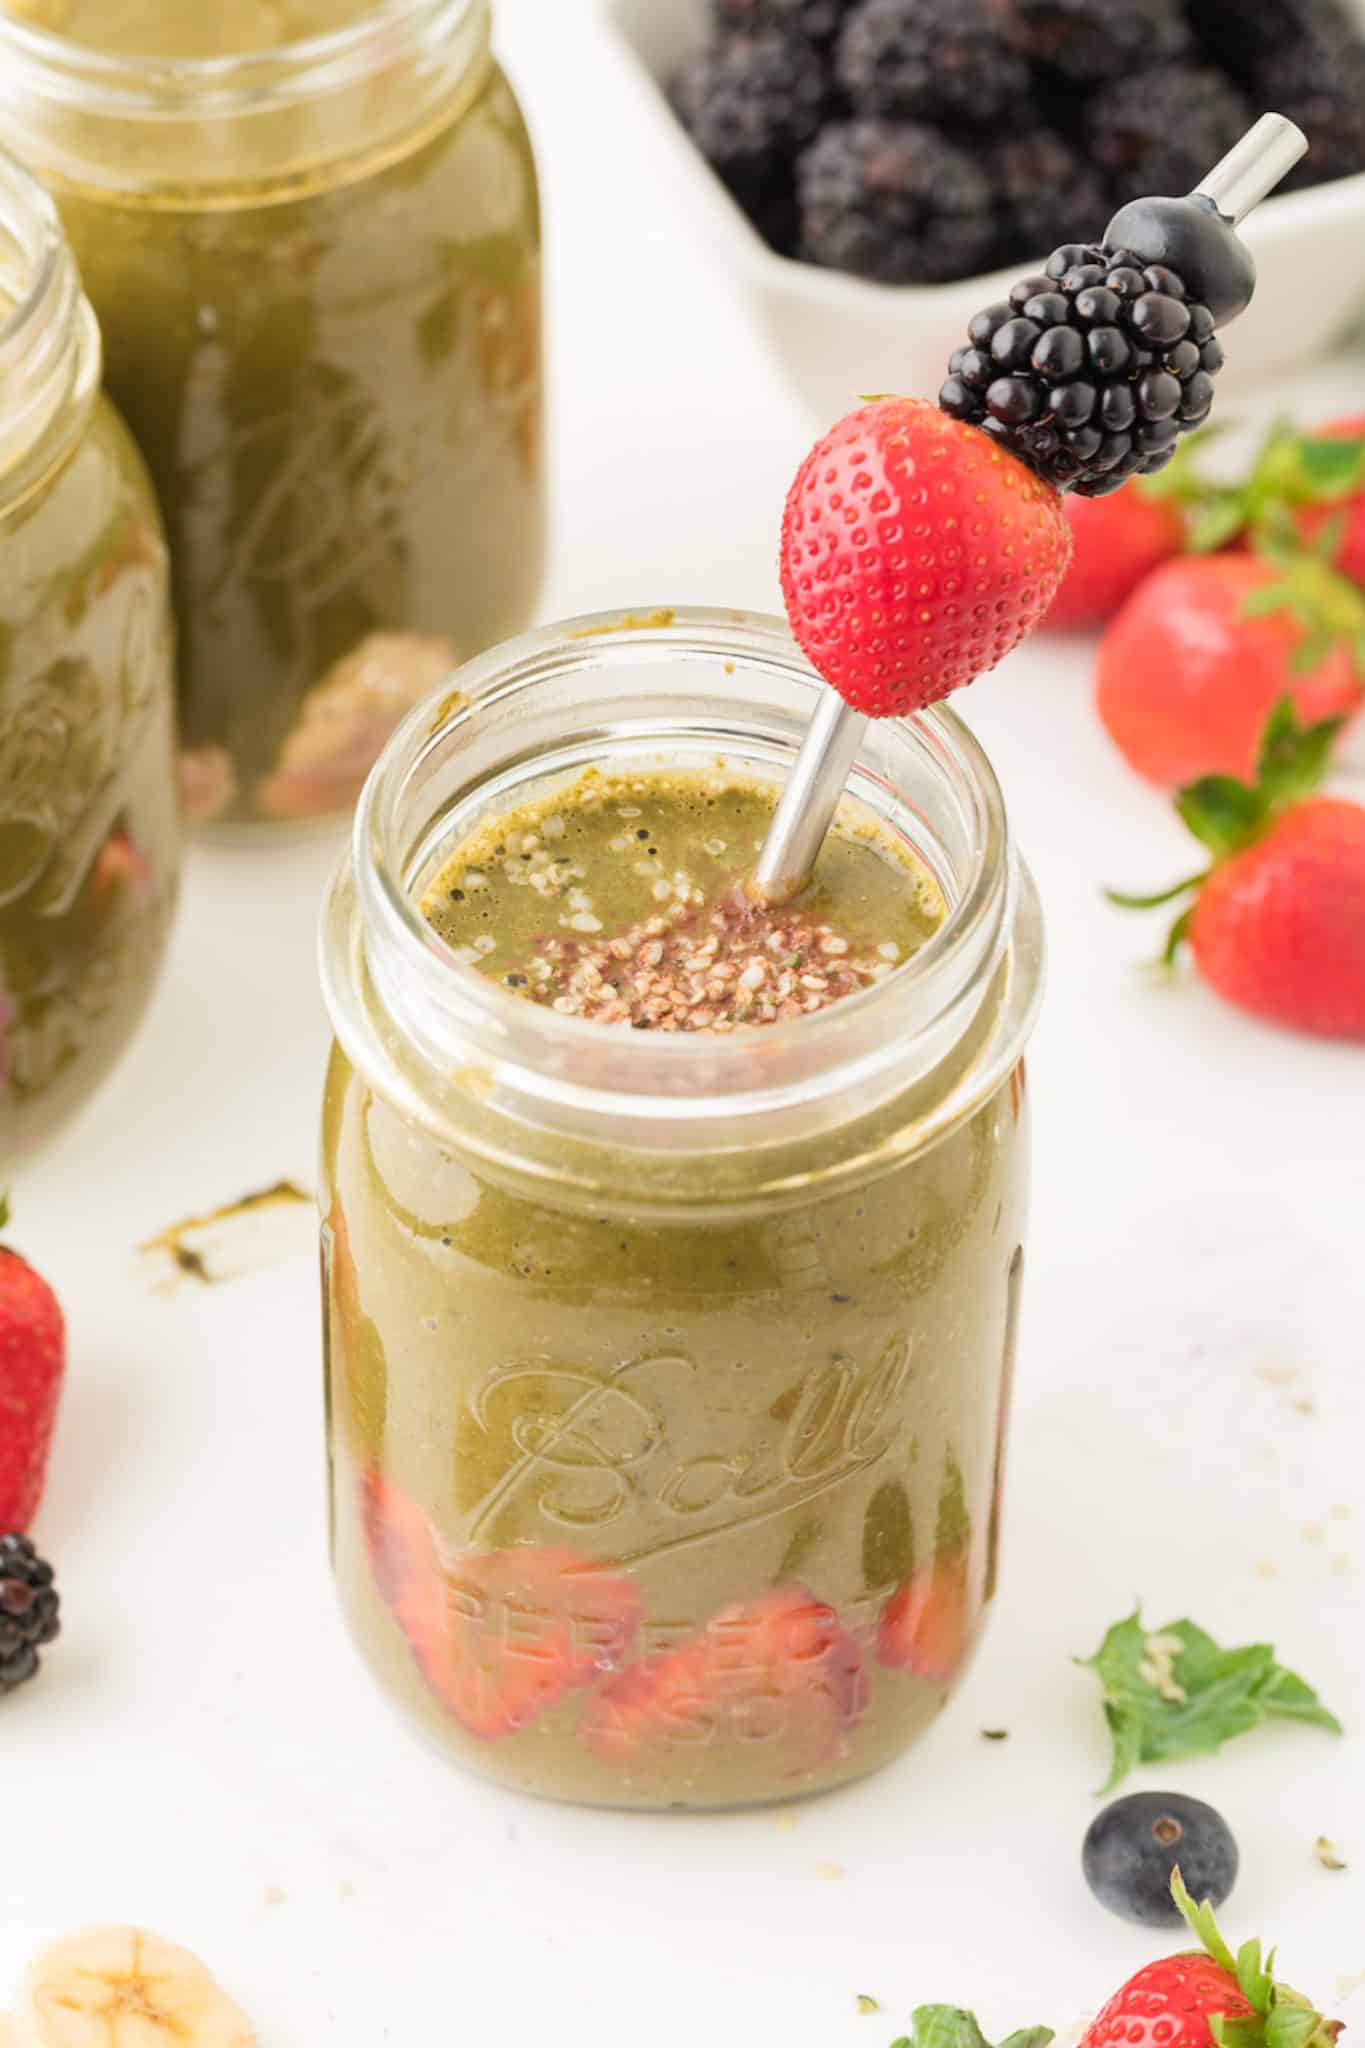 A kale berry chocolate smoothie served in a ball jar